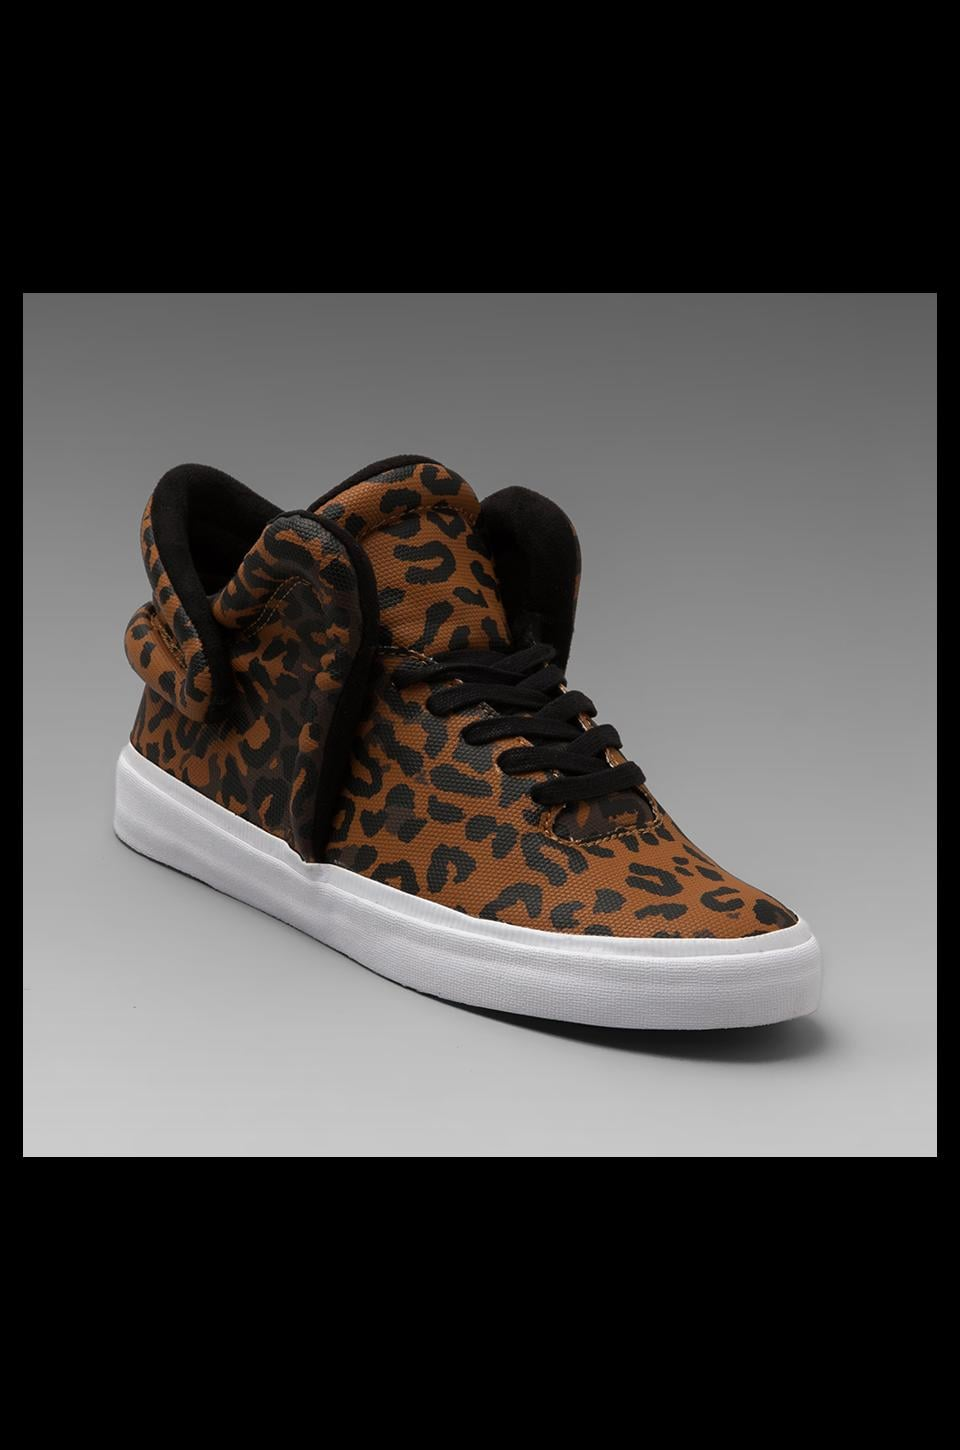 Supra Falcon in Cheetah/White